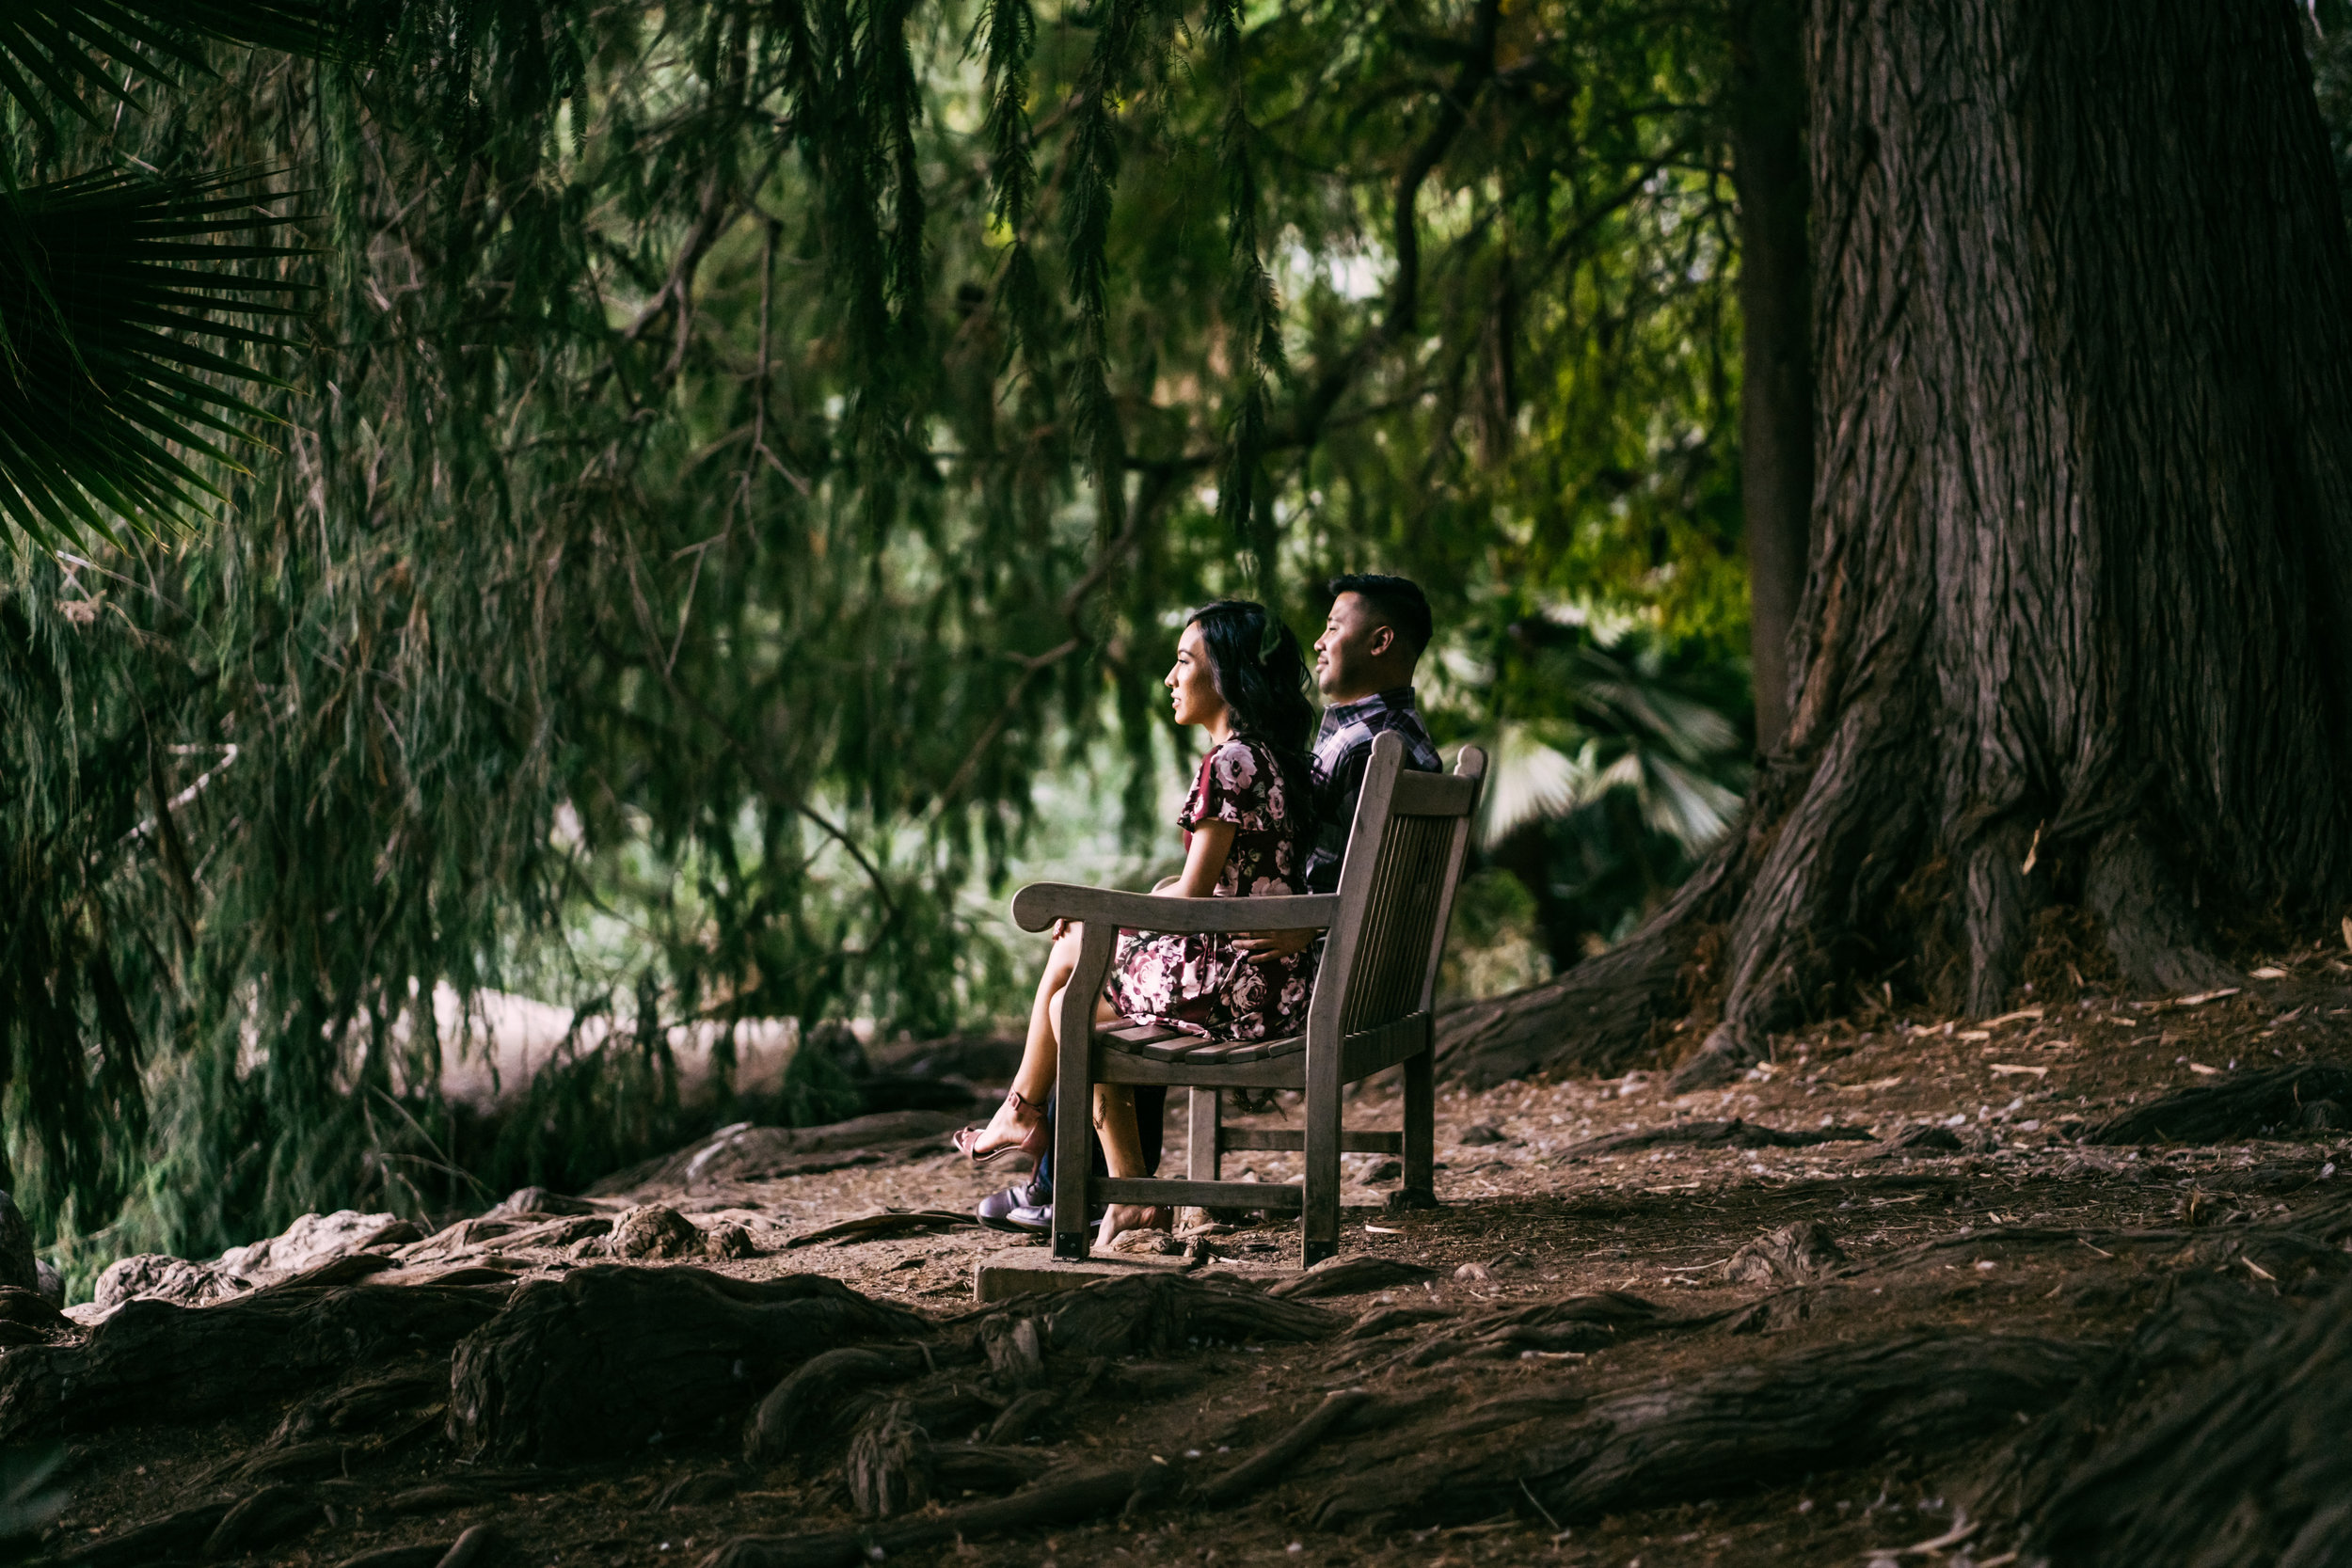 la-county-arboretum-engagement-photo-nick-veronica-0-4.jpg